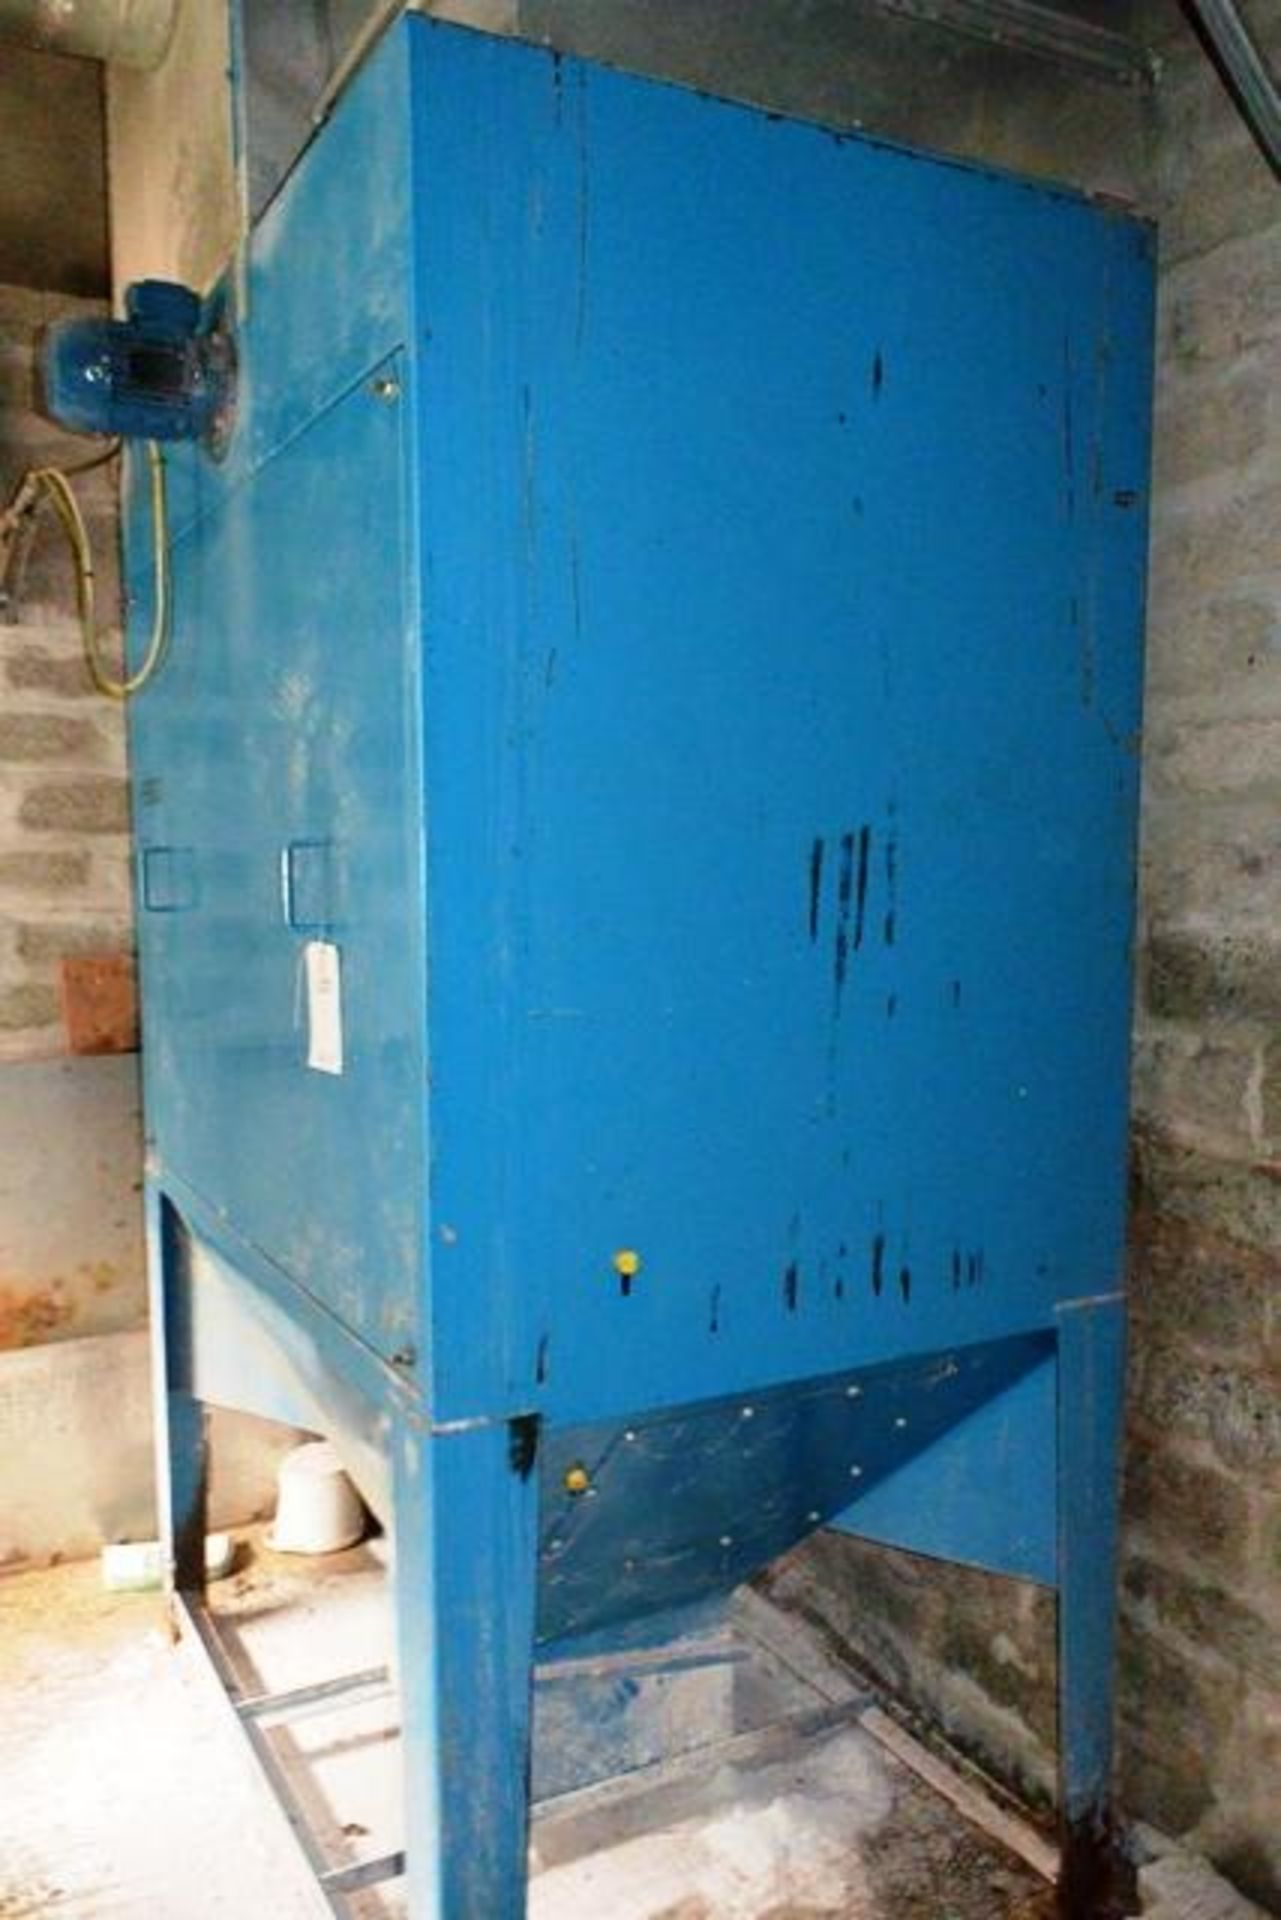 Steel frame extraction unit, approx total dimension 2500mm x 1650 x 1070mm (Please note: Excludes - Image 3 of 3